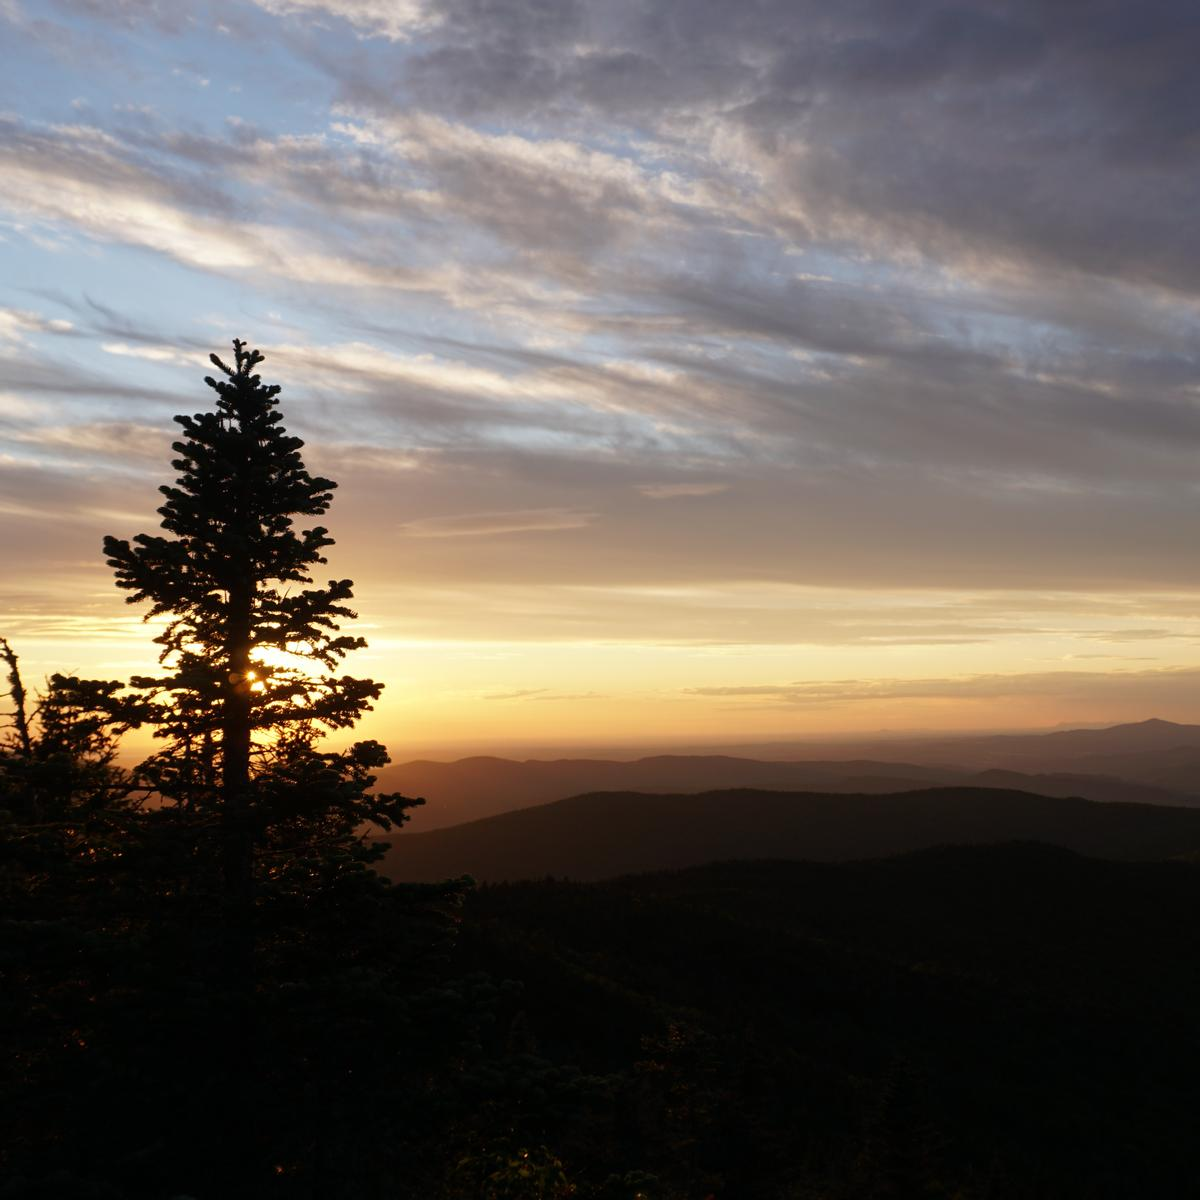 Sunset in the mountains. Photo credit: Mike Finnegan